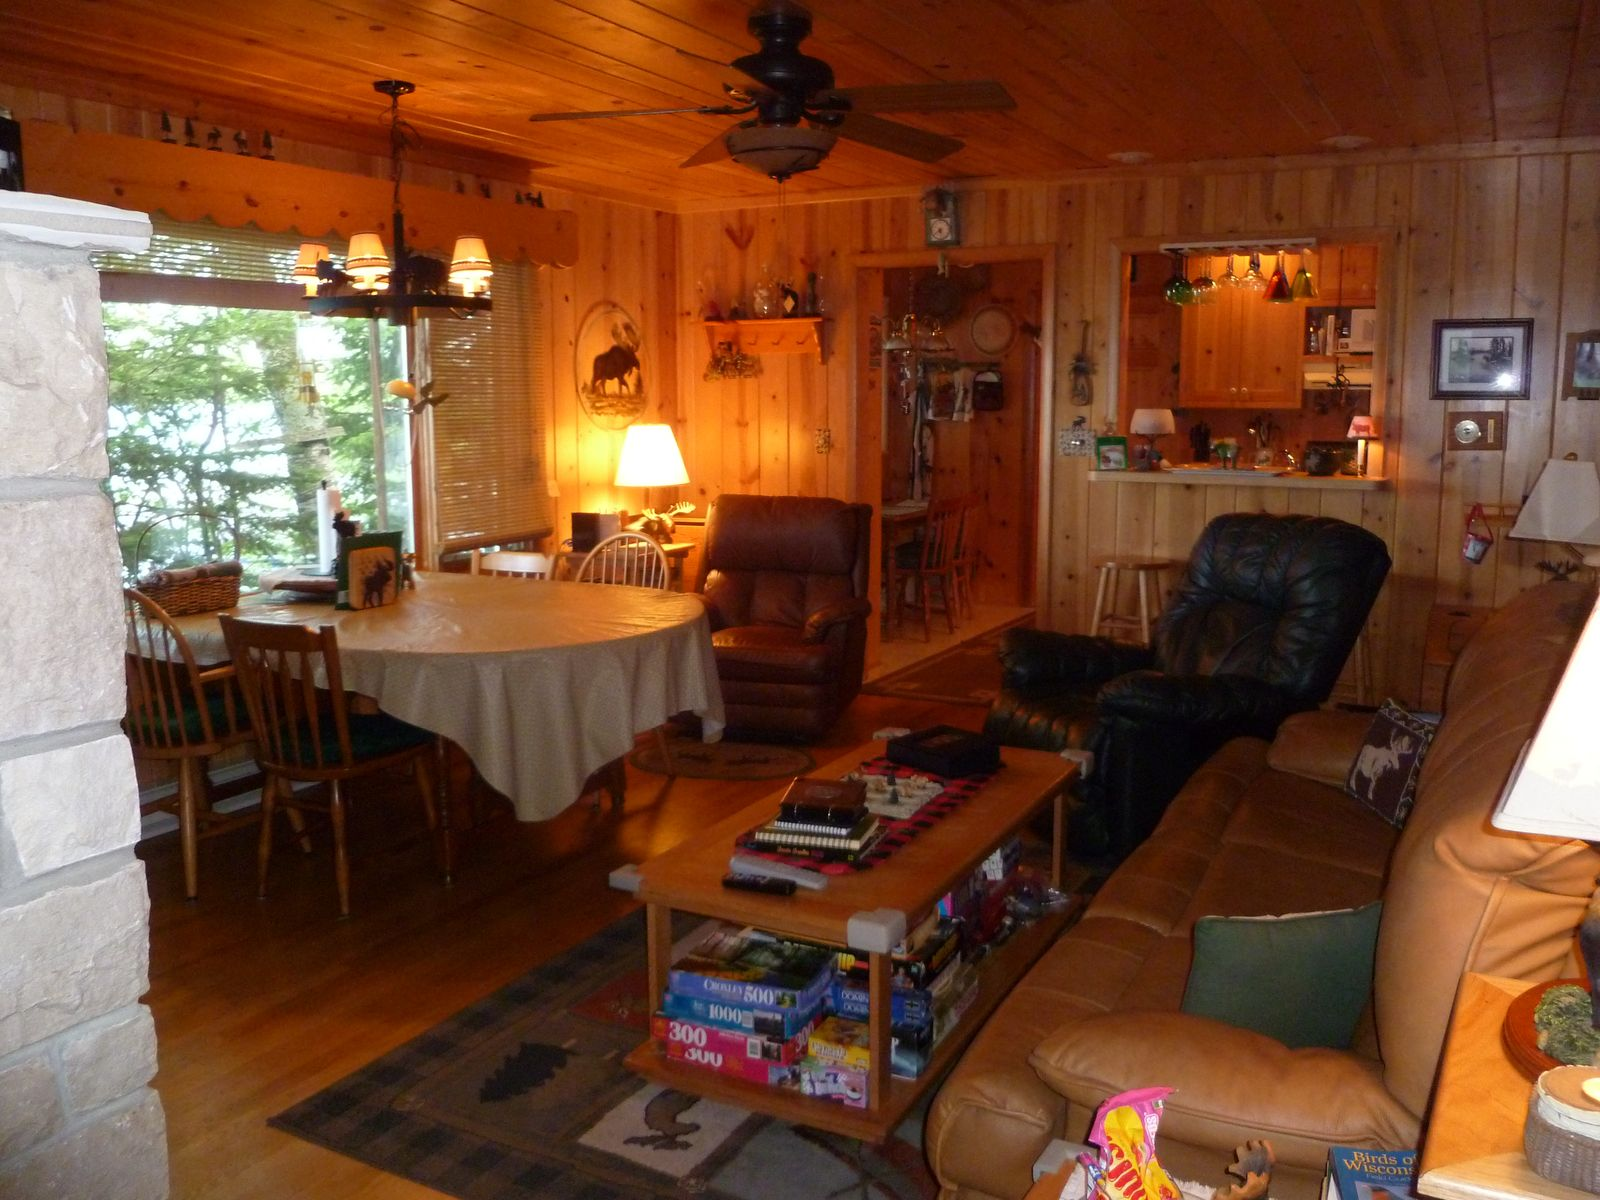 cabins lake northern cove wi clam rentals lodge cabin lodging homes vacation wisconsin crystal